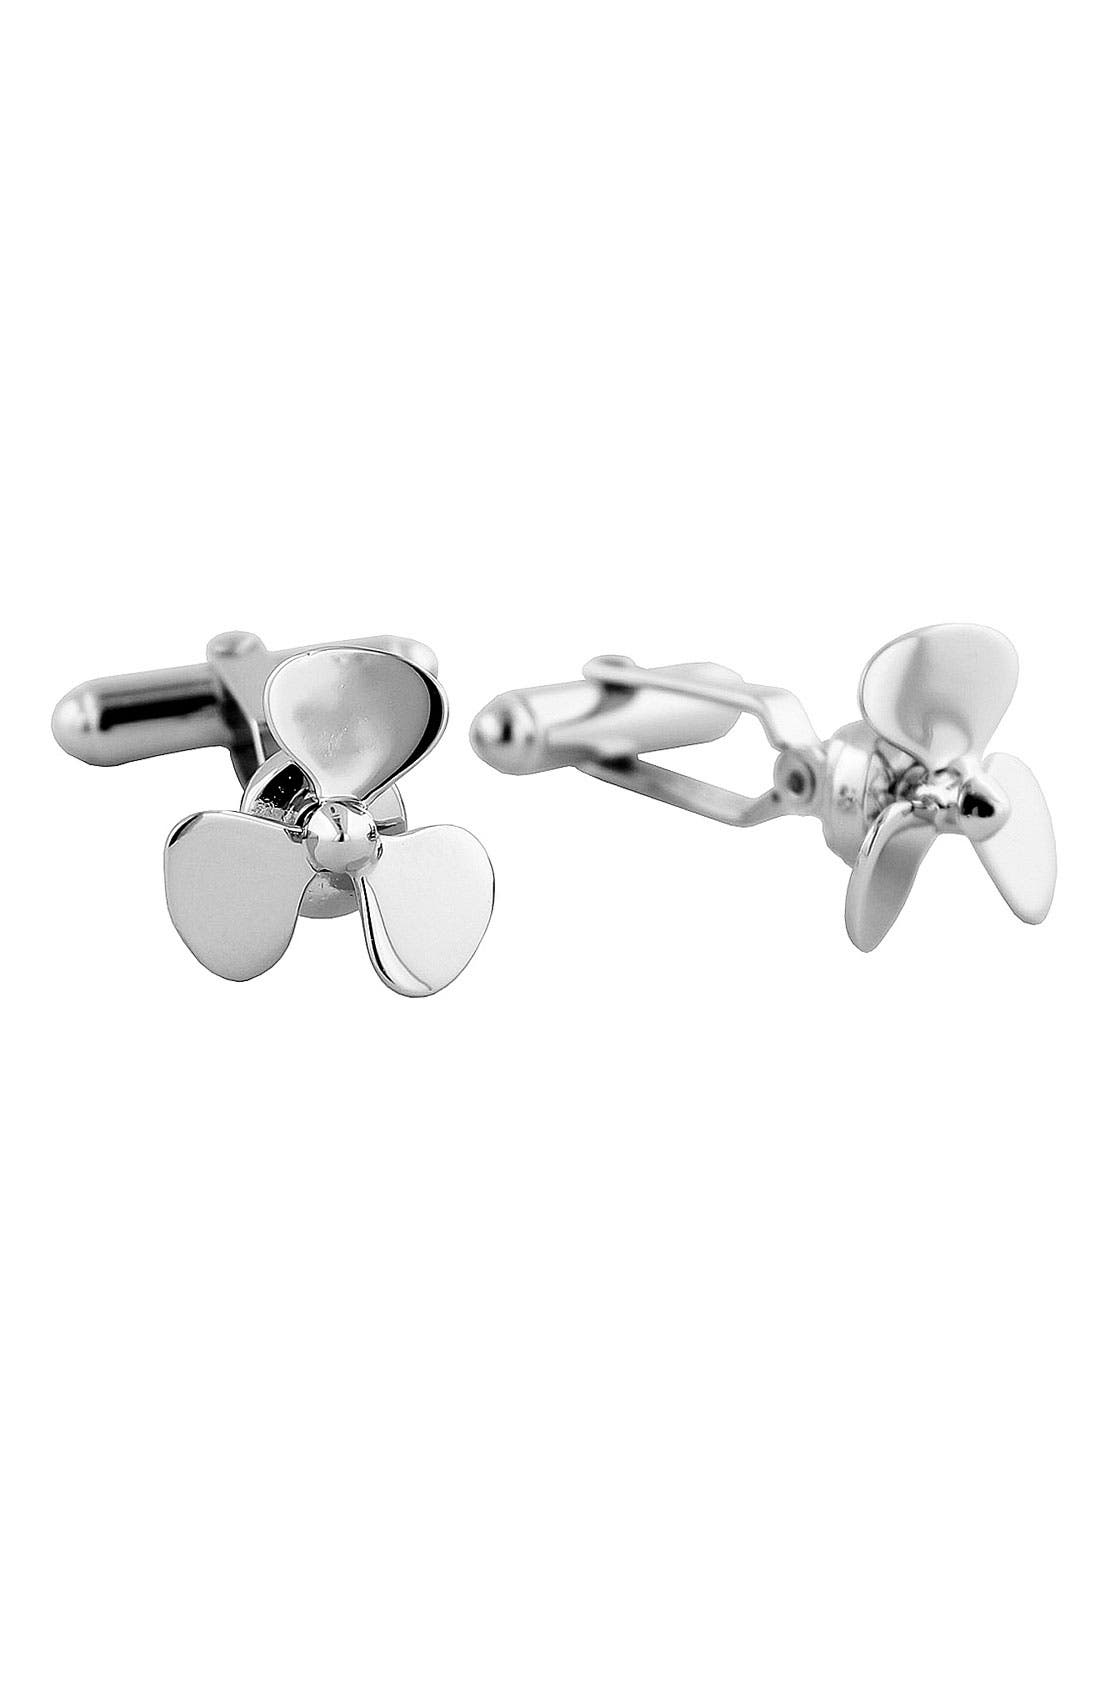 'Propeller' Cuff Links,                             Main thumbnail 1, color,